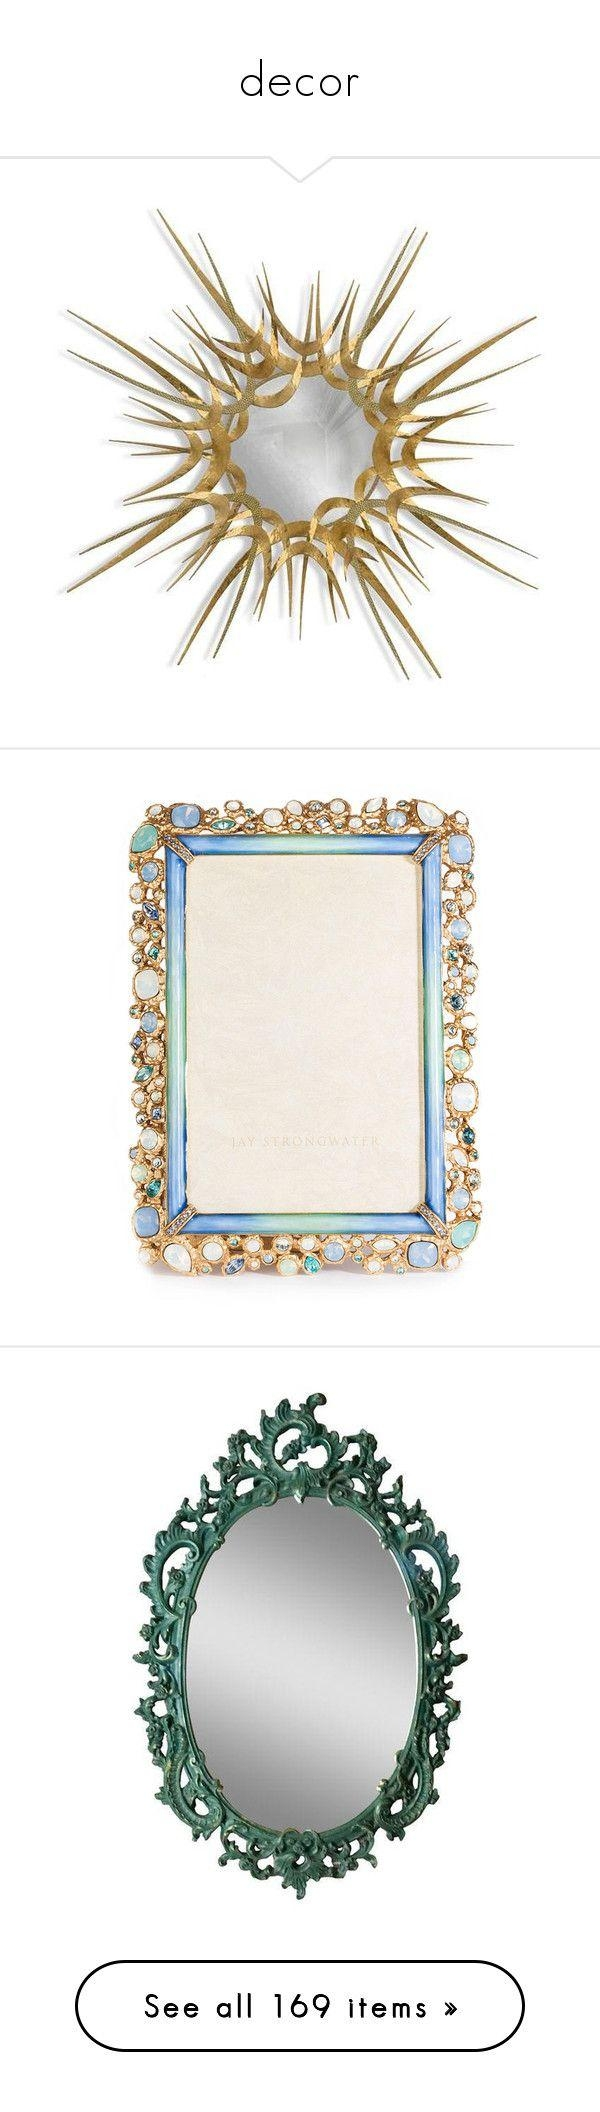 Best 10+ Cream Wall Mirrors Ideas On Pinterest | Neutral Wall Inside Cream Mirrors (View 18 of 20)